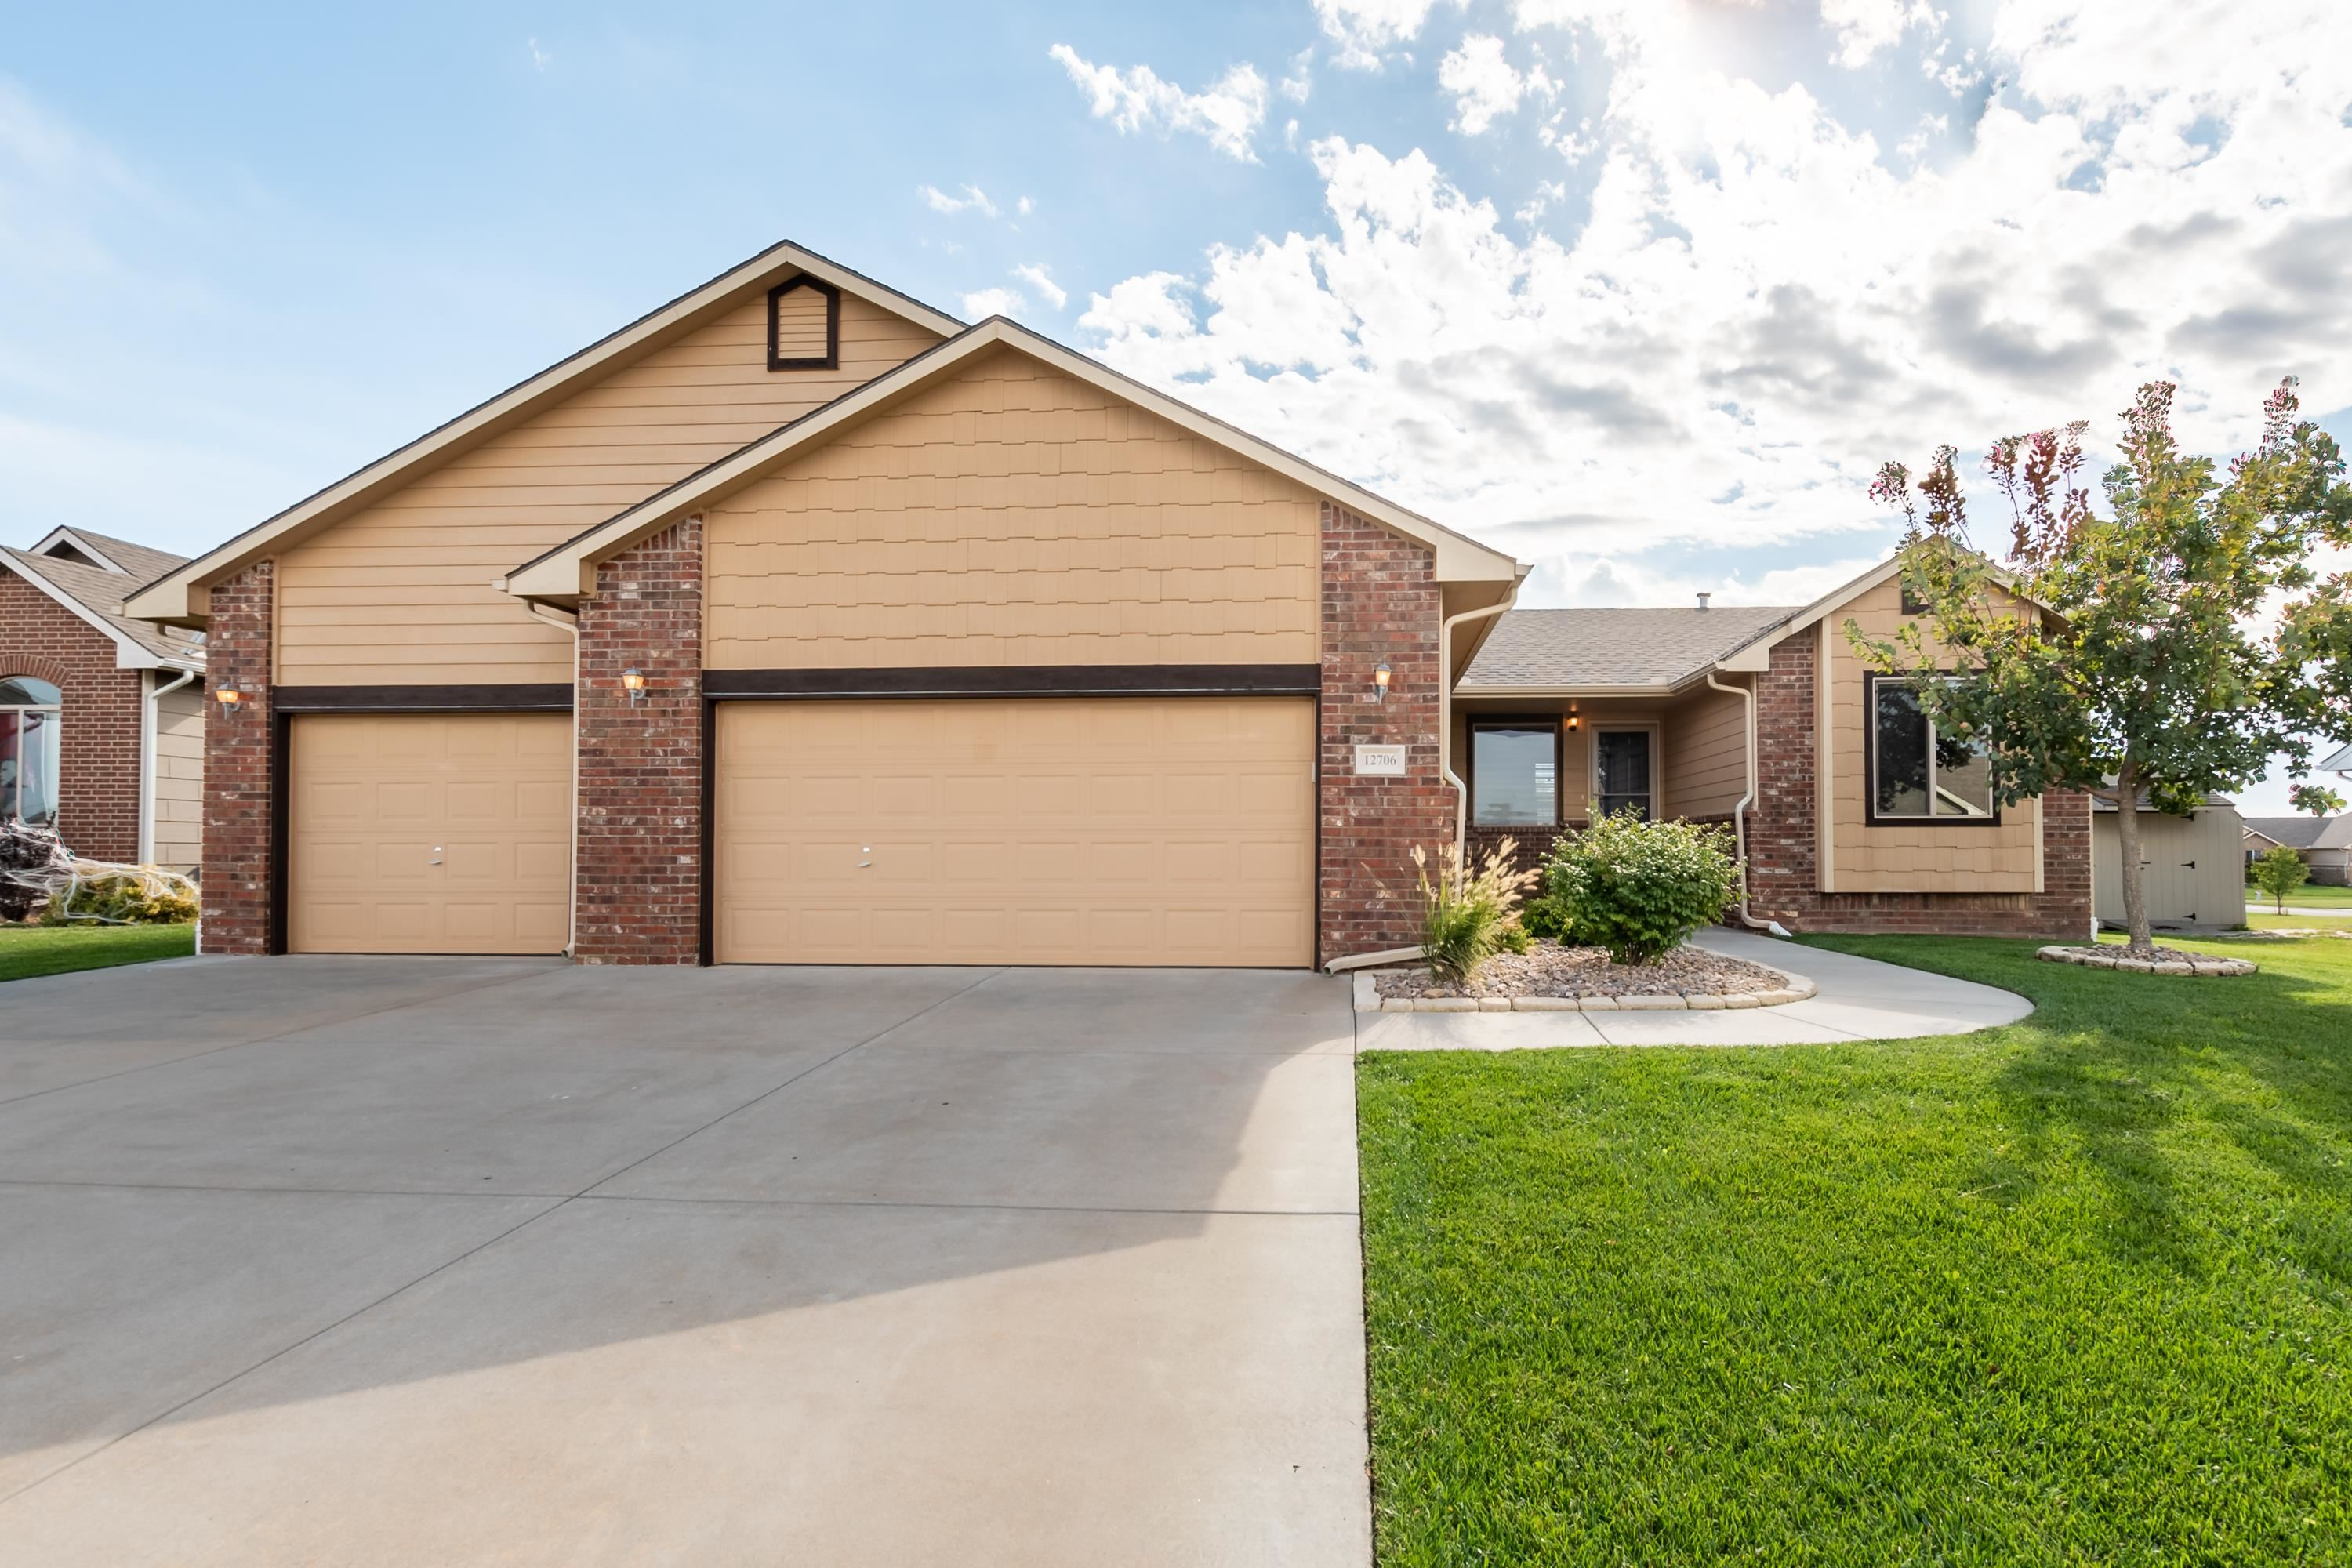 Move in ready home in Goddard school district! This home features 4 bedrooms, 3 baths and a 3 car ga